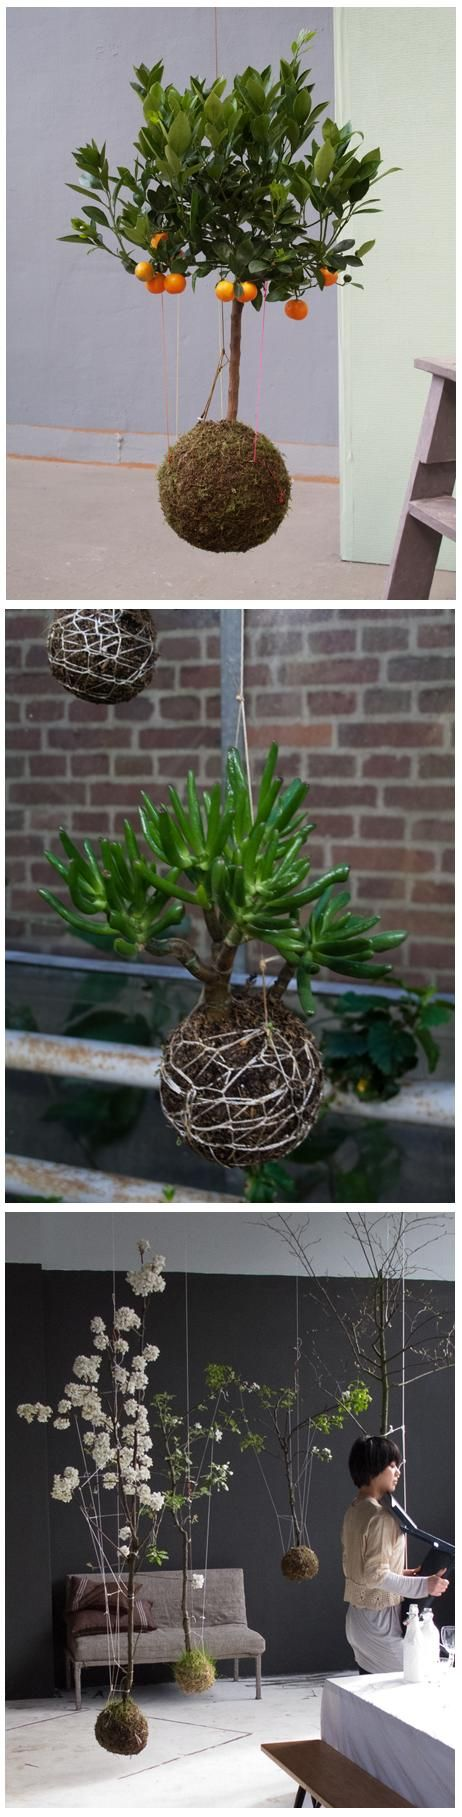 Gardening Ideas : string garden